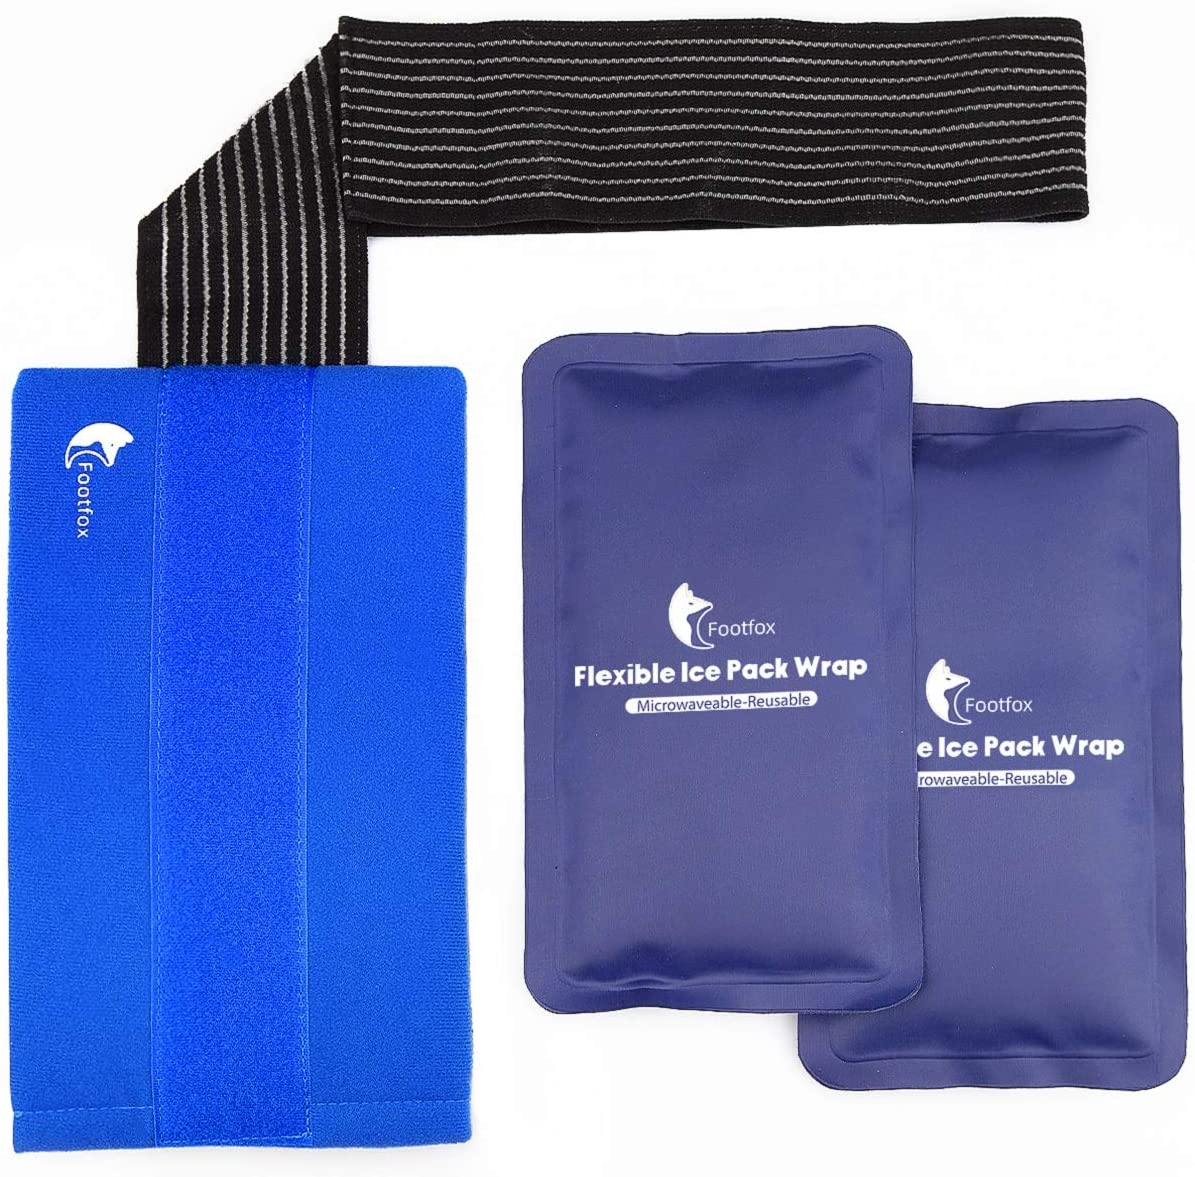 Amazon.com: Gel Ice Packs for Injuries (2-Piece Set) with Adjustable Wrap,  Reusable Hot or Cold Pack for Shoulder, Knee, Arm, Neck, Elbow, Back,  Ankle, Therapy & More: Health & Personal Care